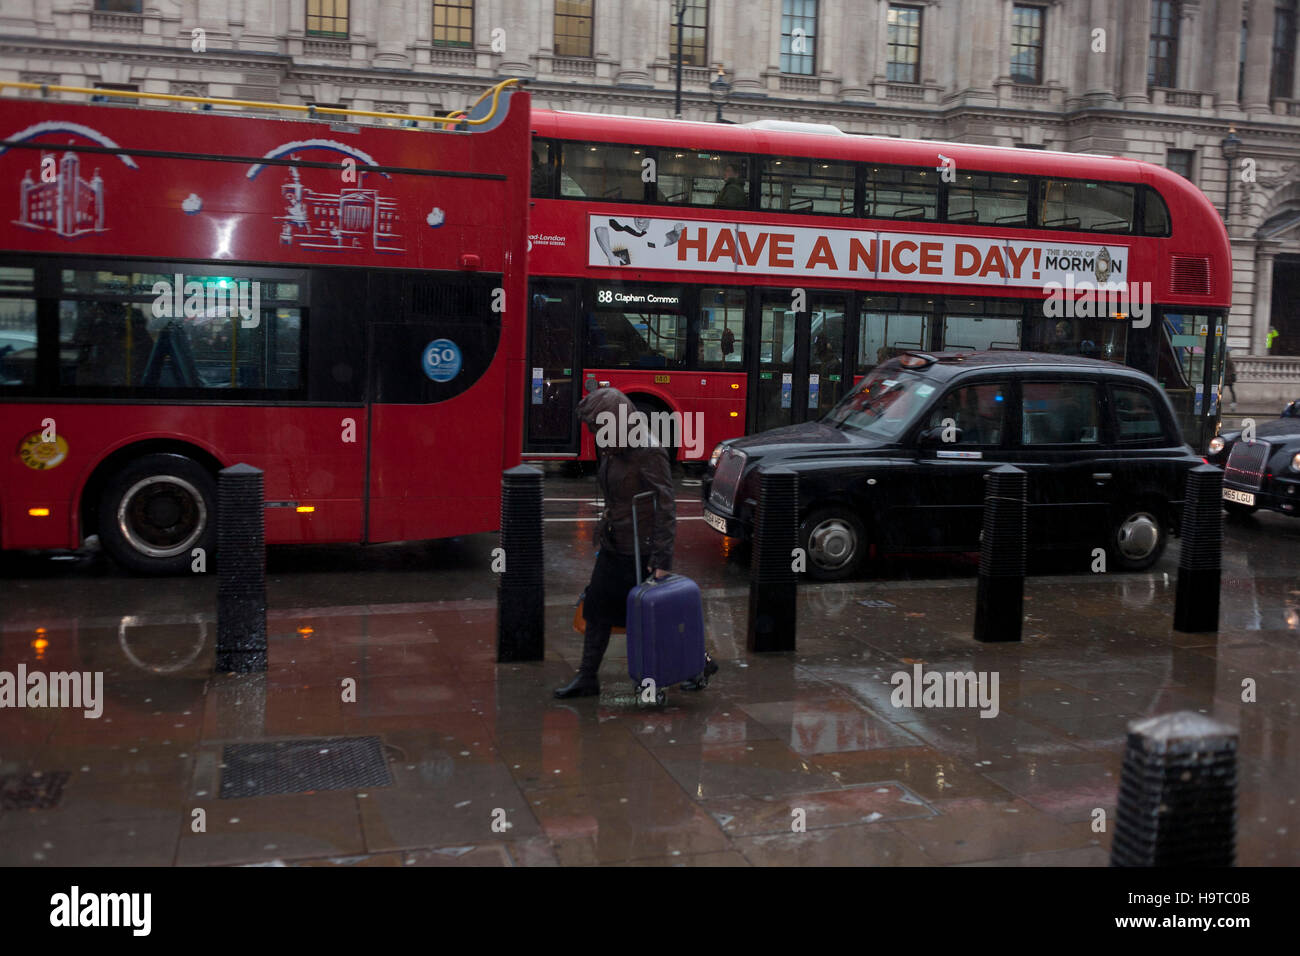 'Have a Nice Day' banner on a central London bus during a morning shower in Whitehall, central London. - Stock Image